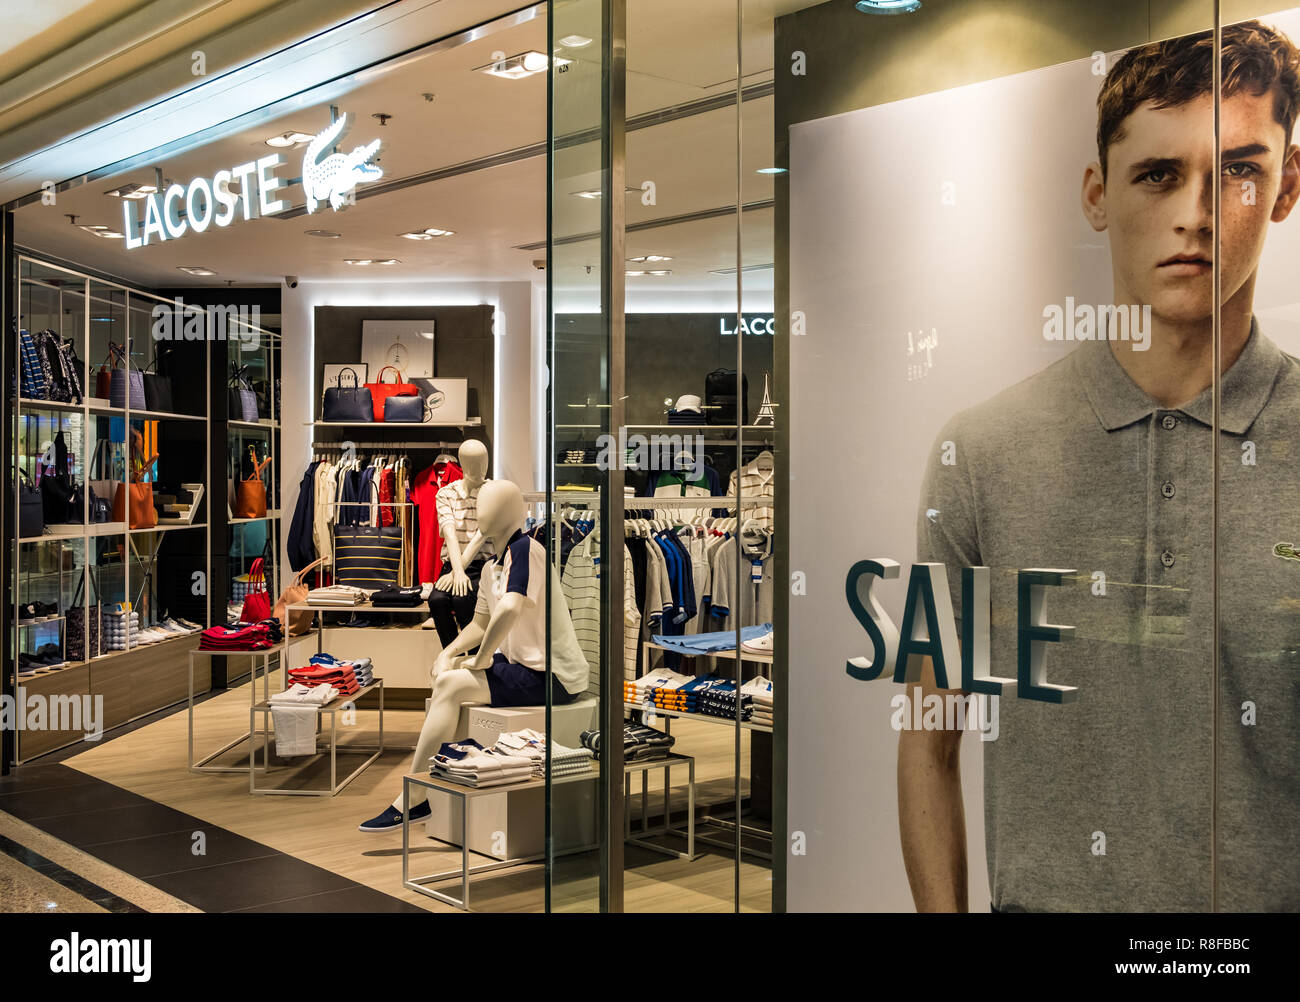 e8d09bab3655 Lacoste Store Stock Photos   Lacoste Store Stock Images - Alamy